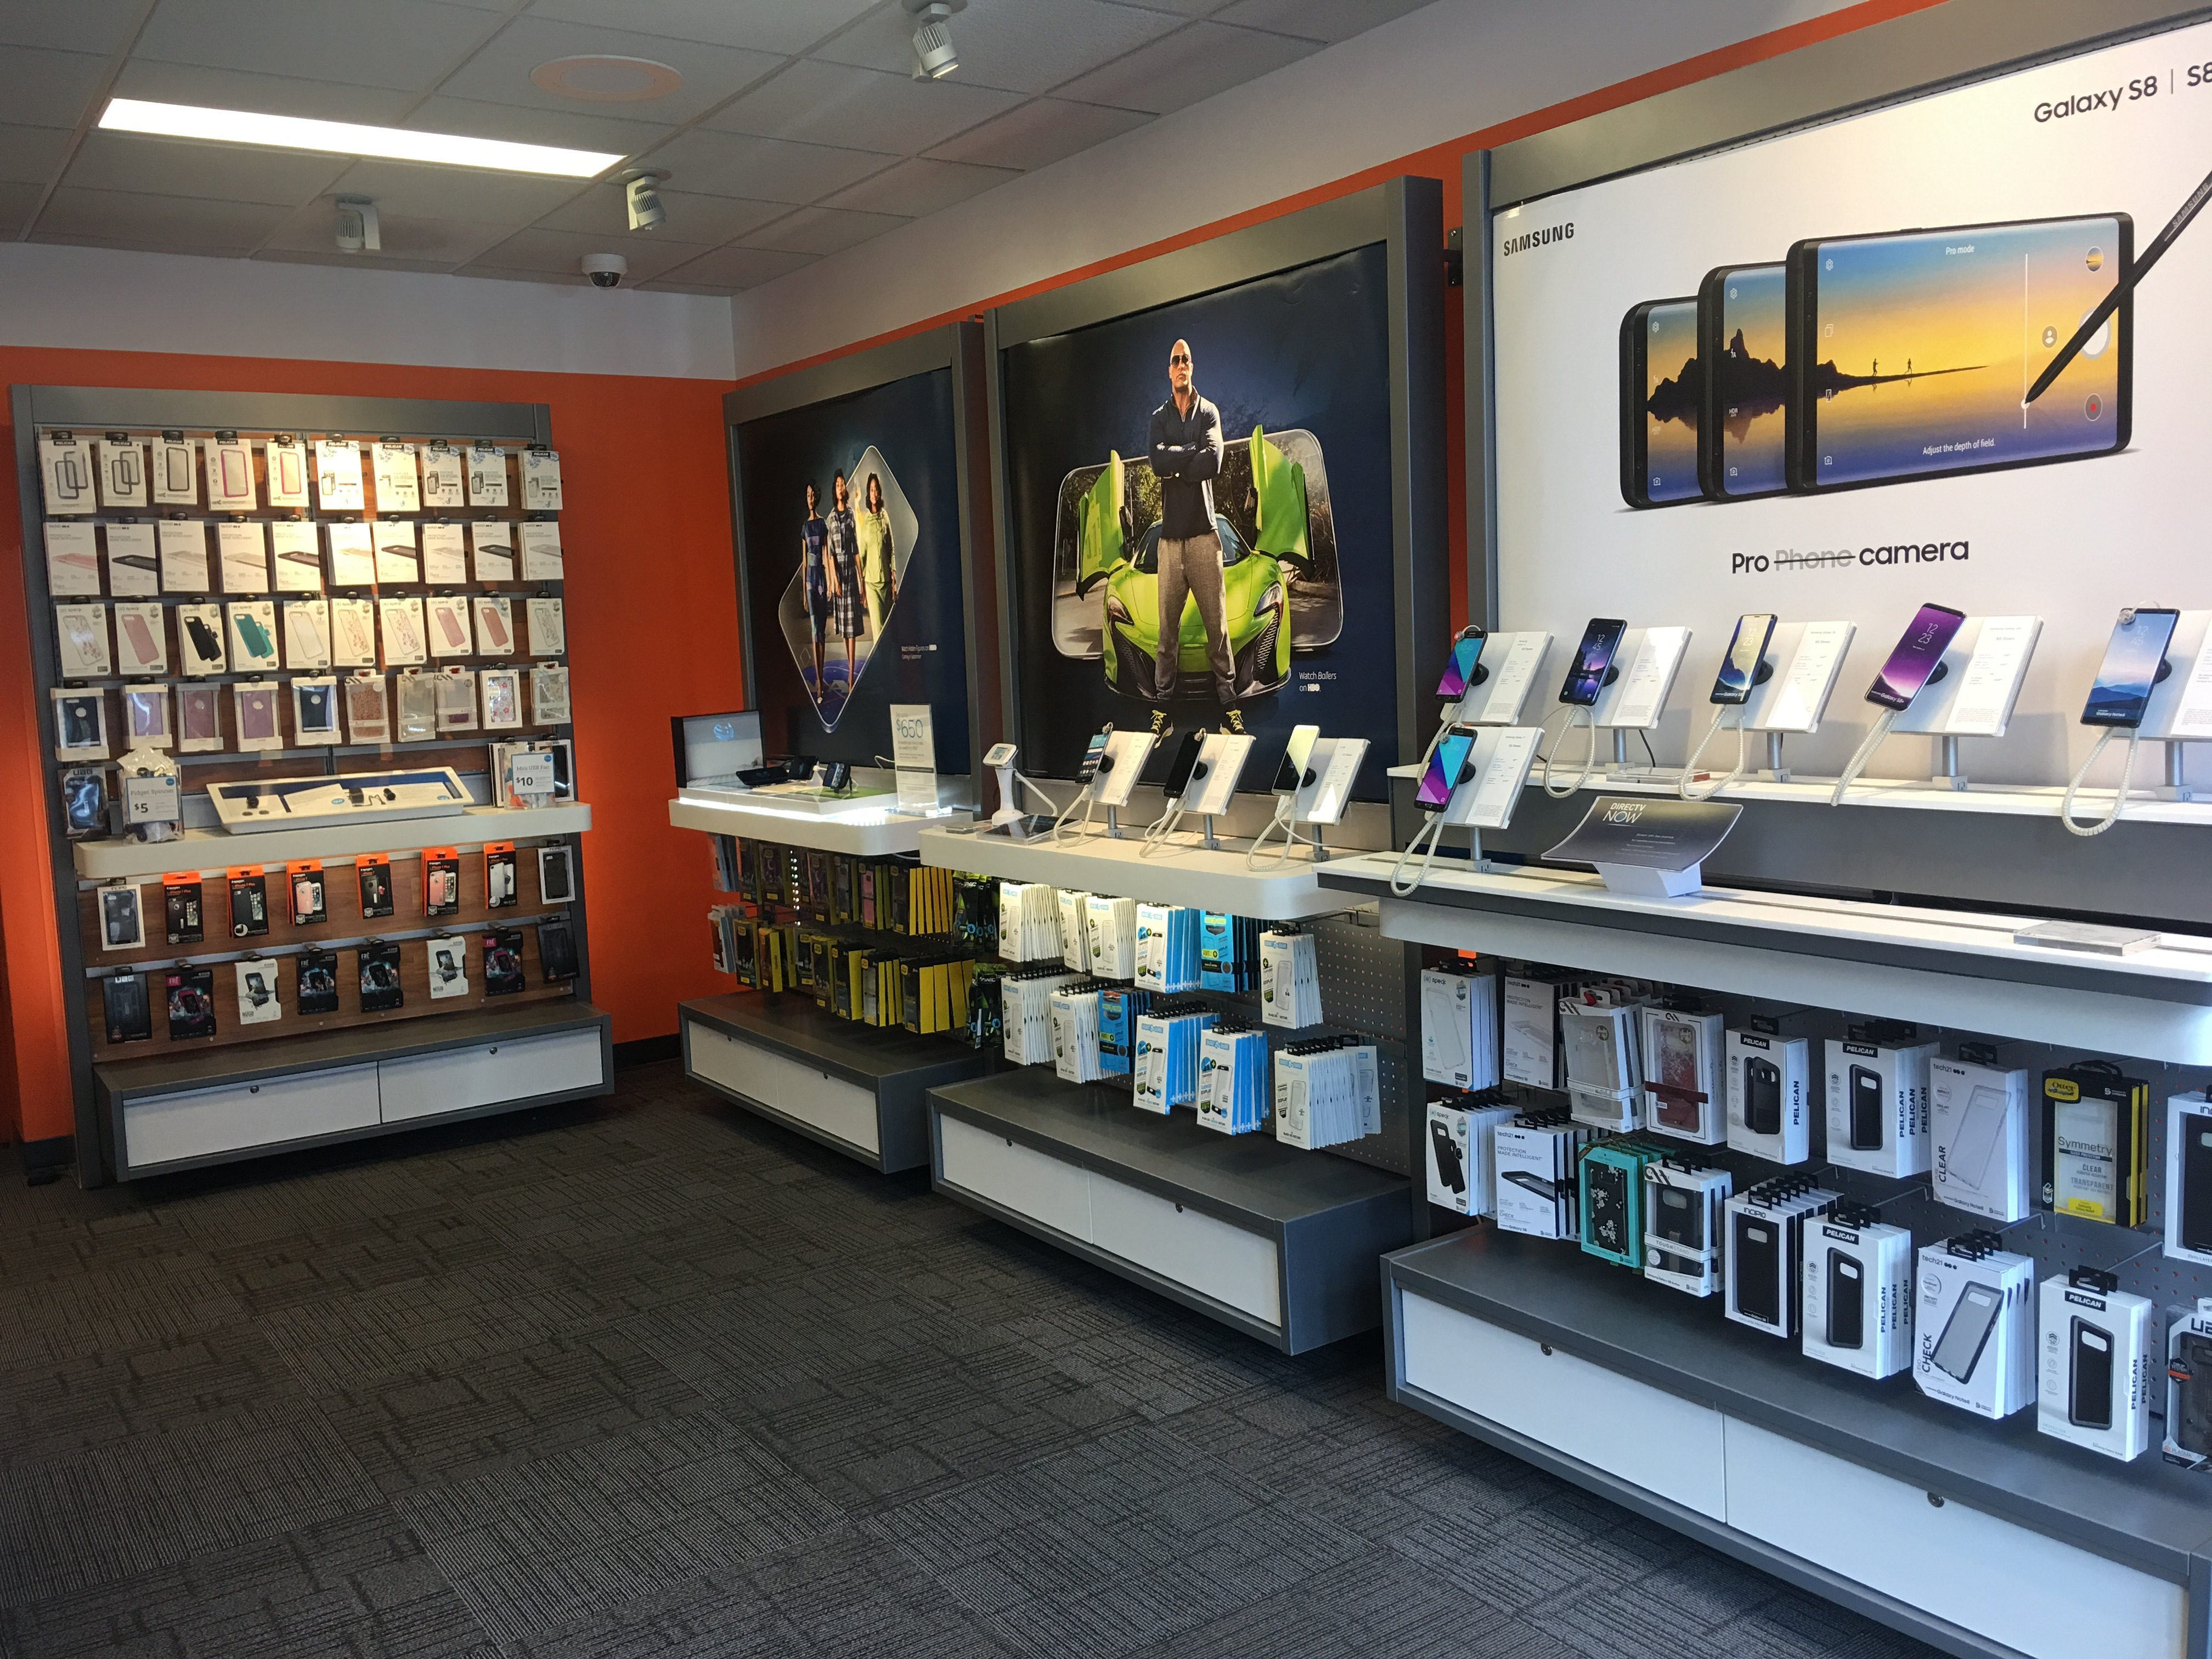 AT&T Store image 11